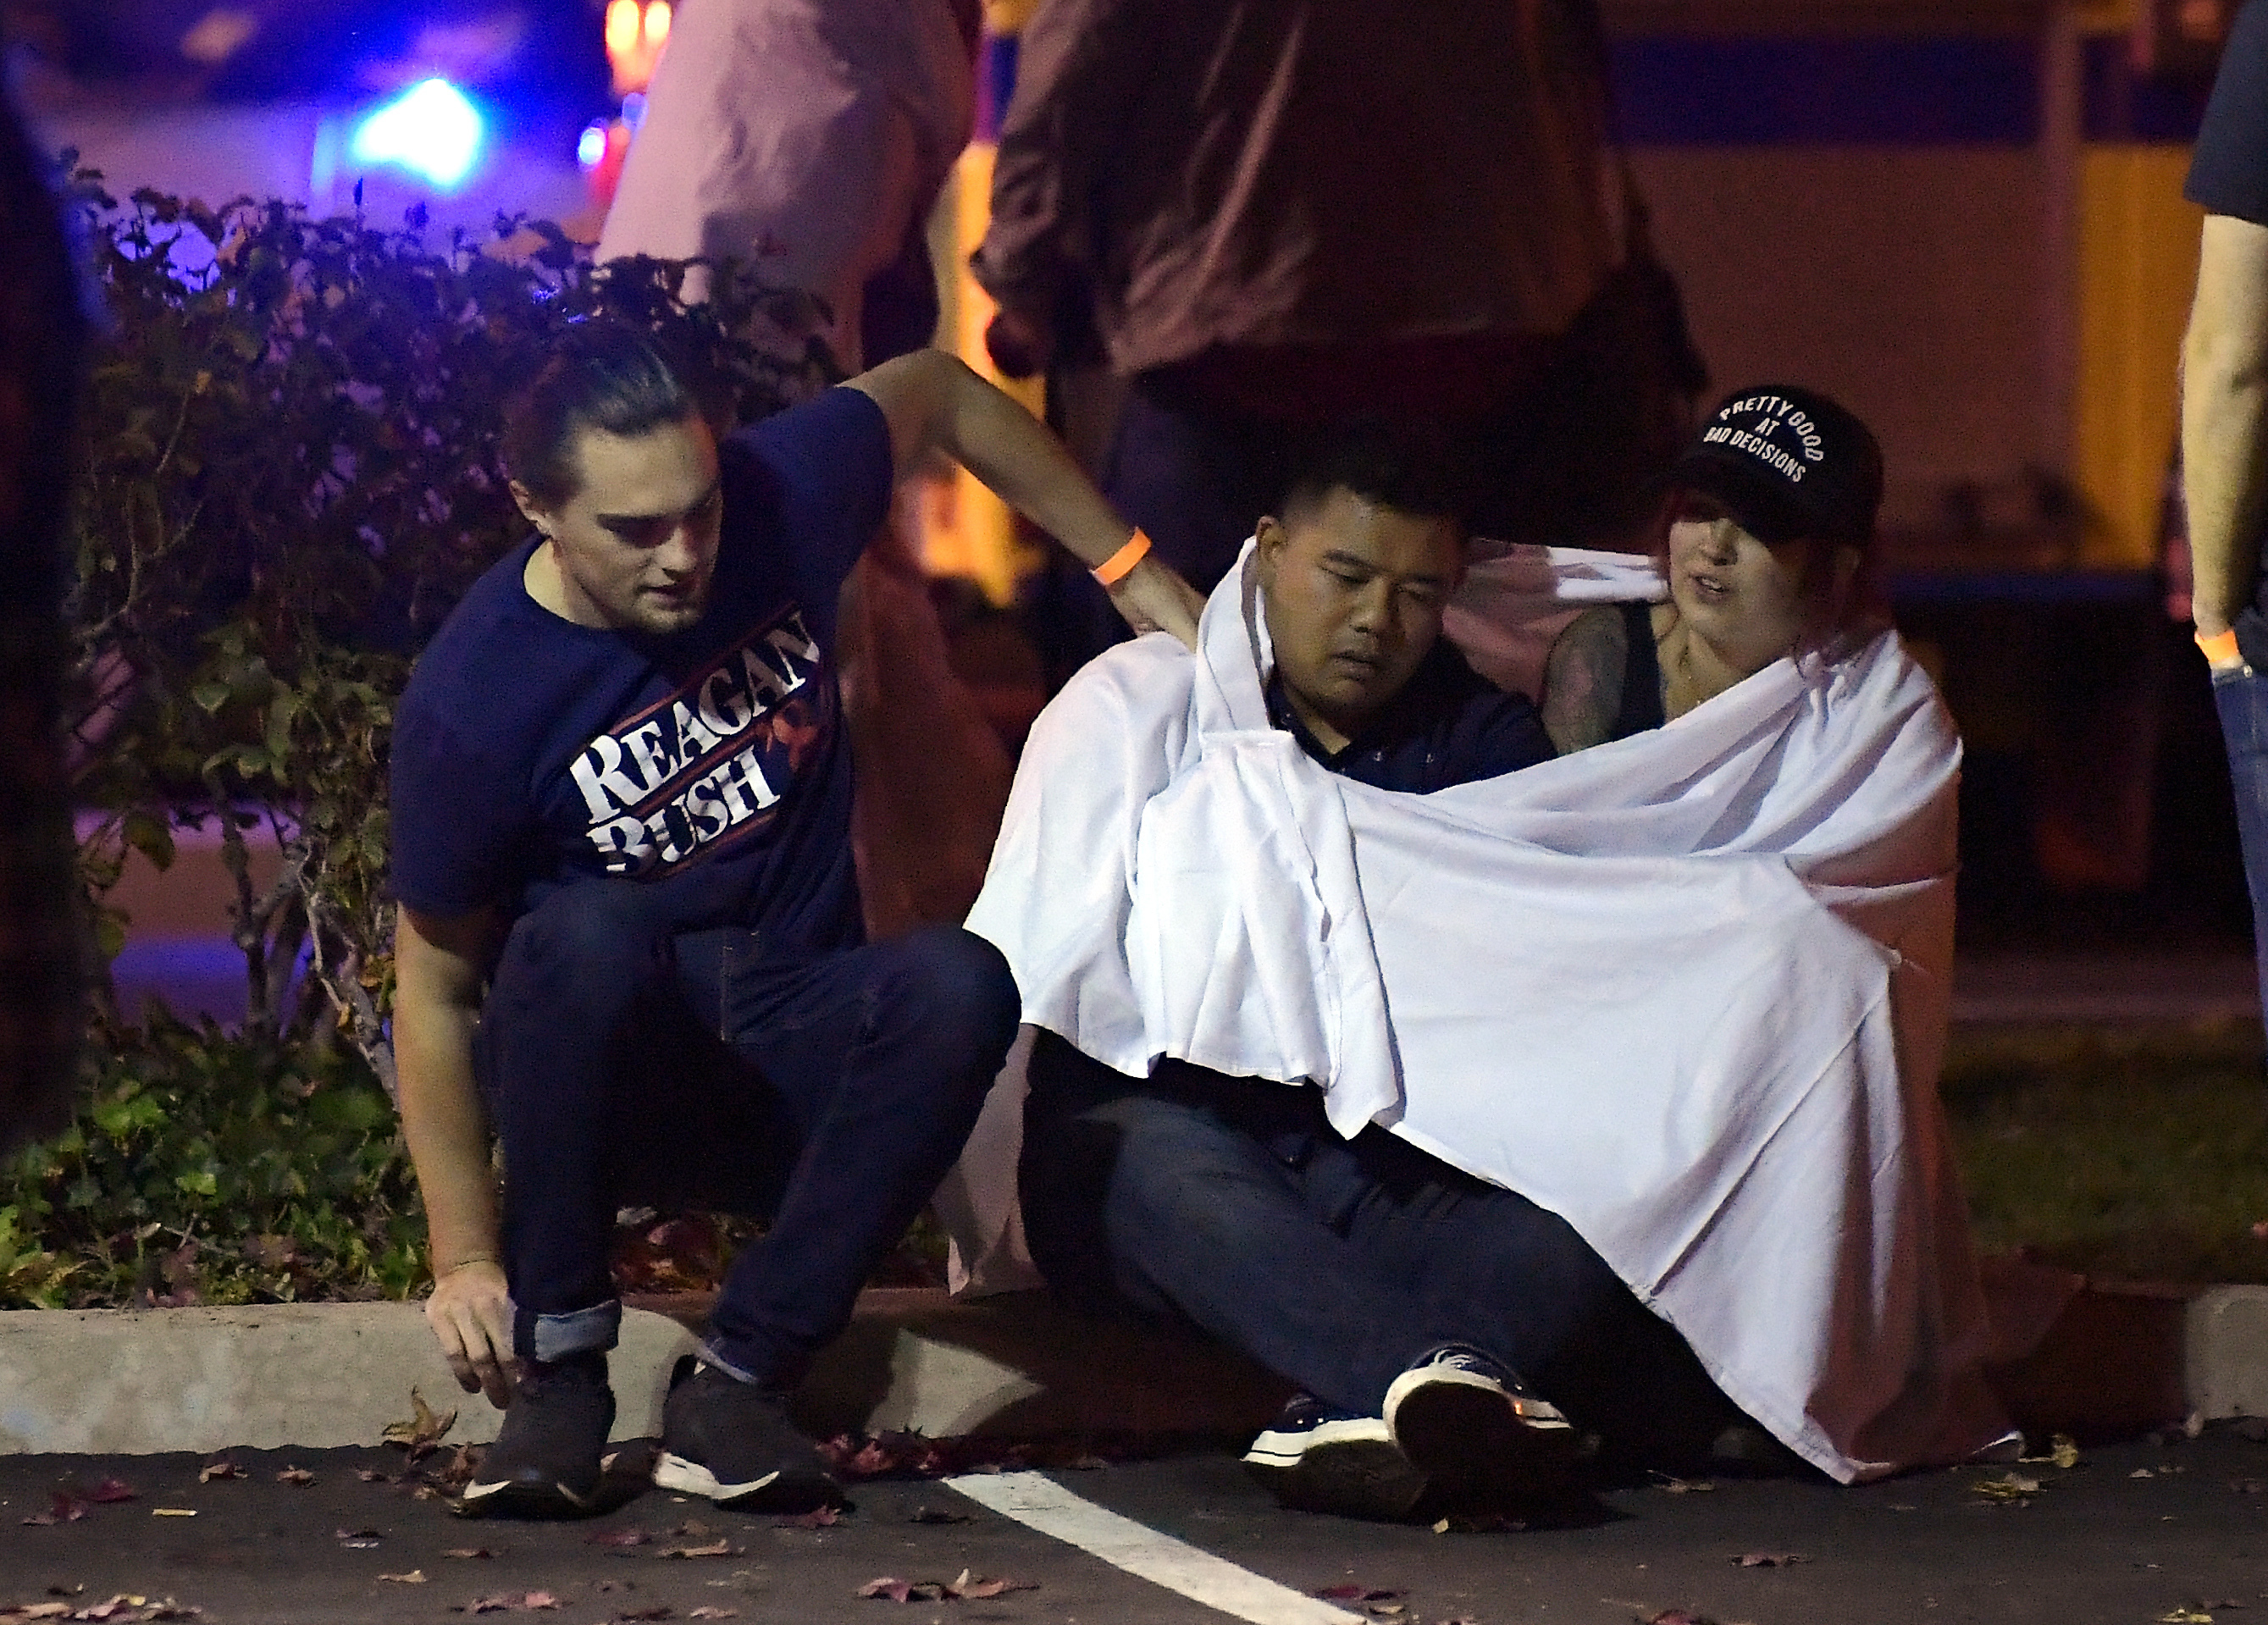 "<div class=""meta image-caption""><div class=""origin-logo origin-image none""><span>none</span></div><span class=""caption-text"">People comfort each other after gunman opens fire on a nightclub in California, killing at least 11. (AP Photo/Mark J. Terrill)</span></div>"